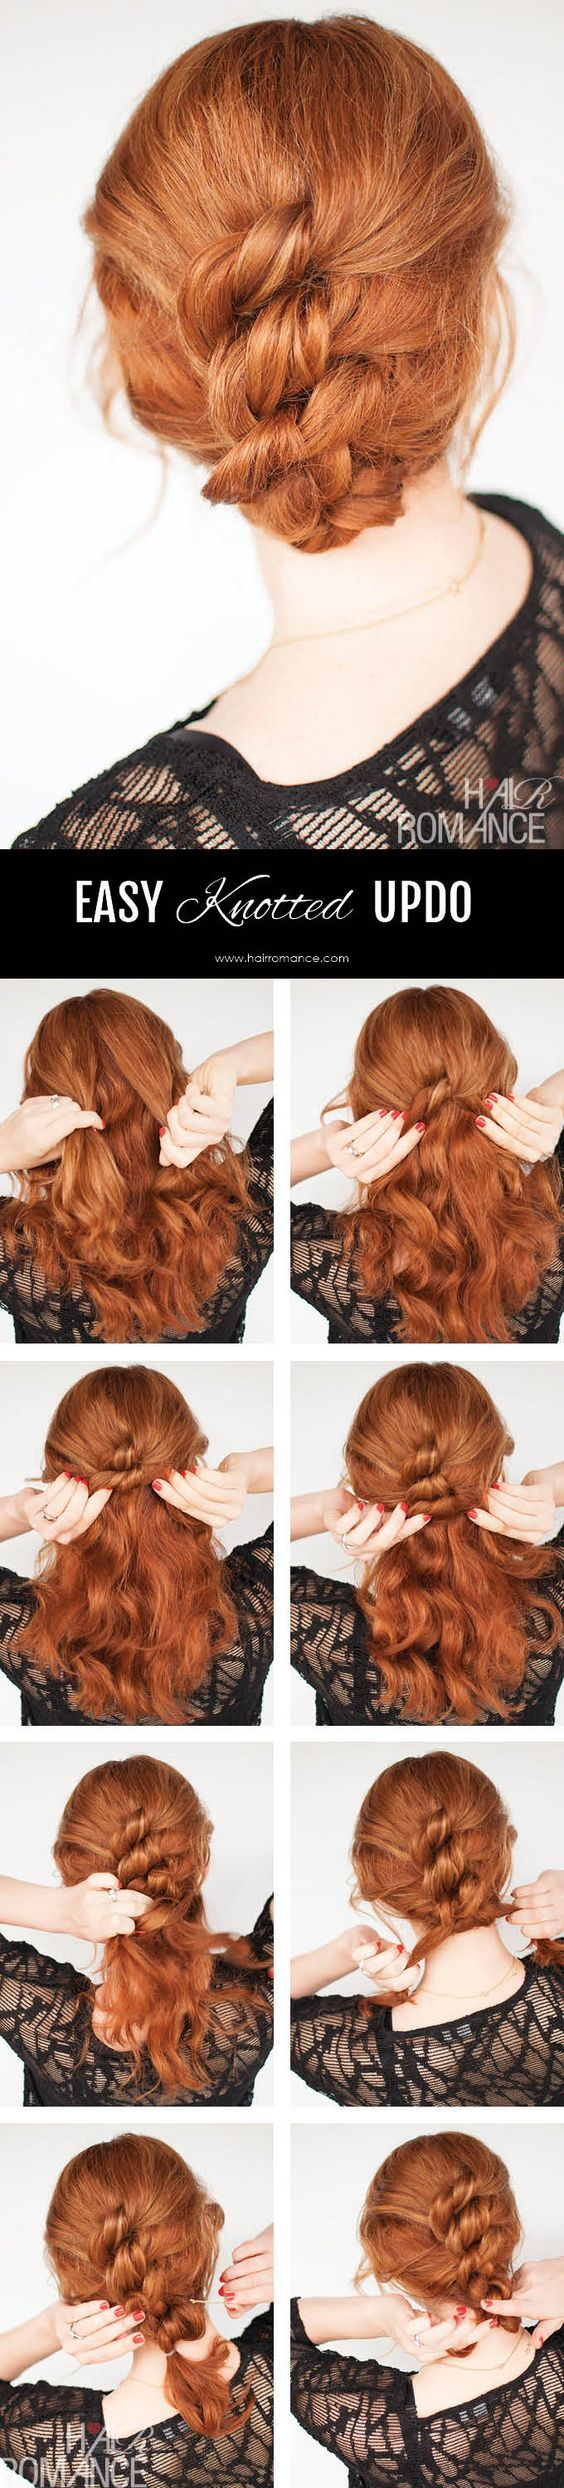 Super easy diy braided hairstyles for wedding tutorials updo easy